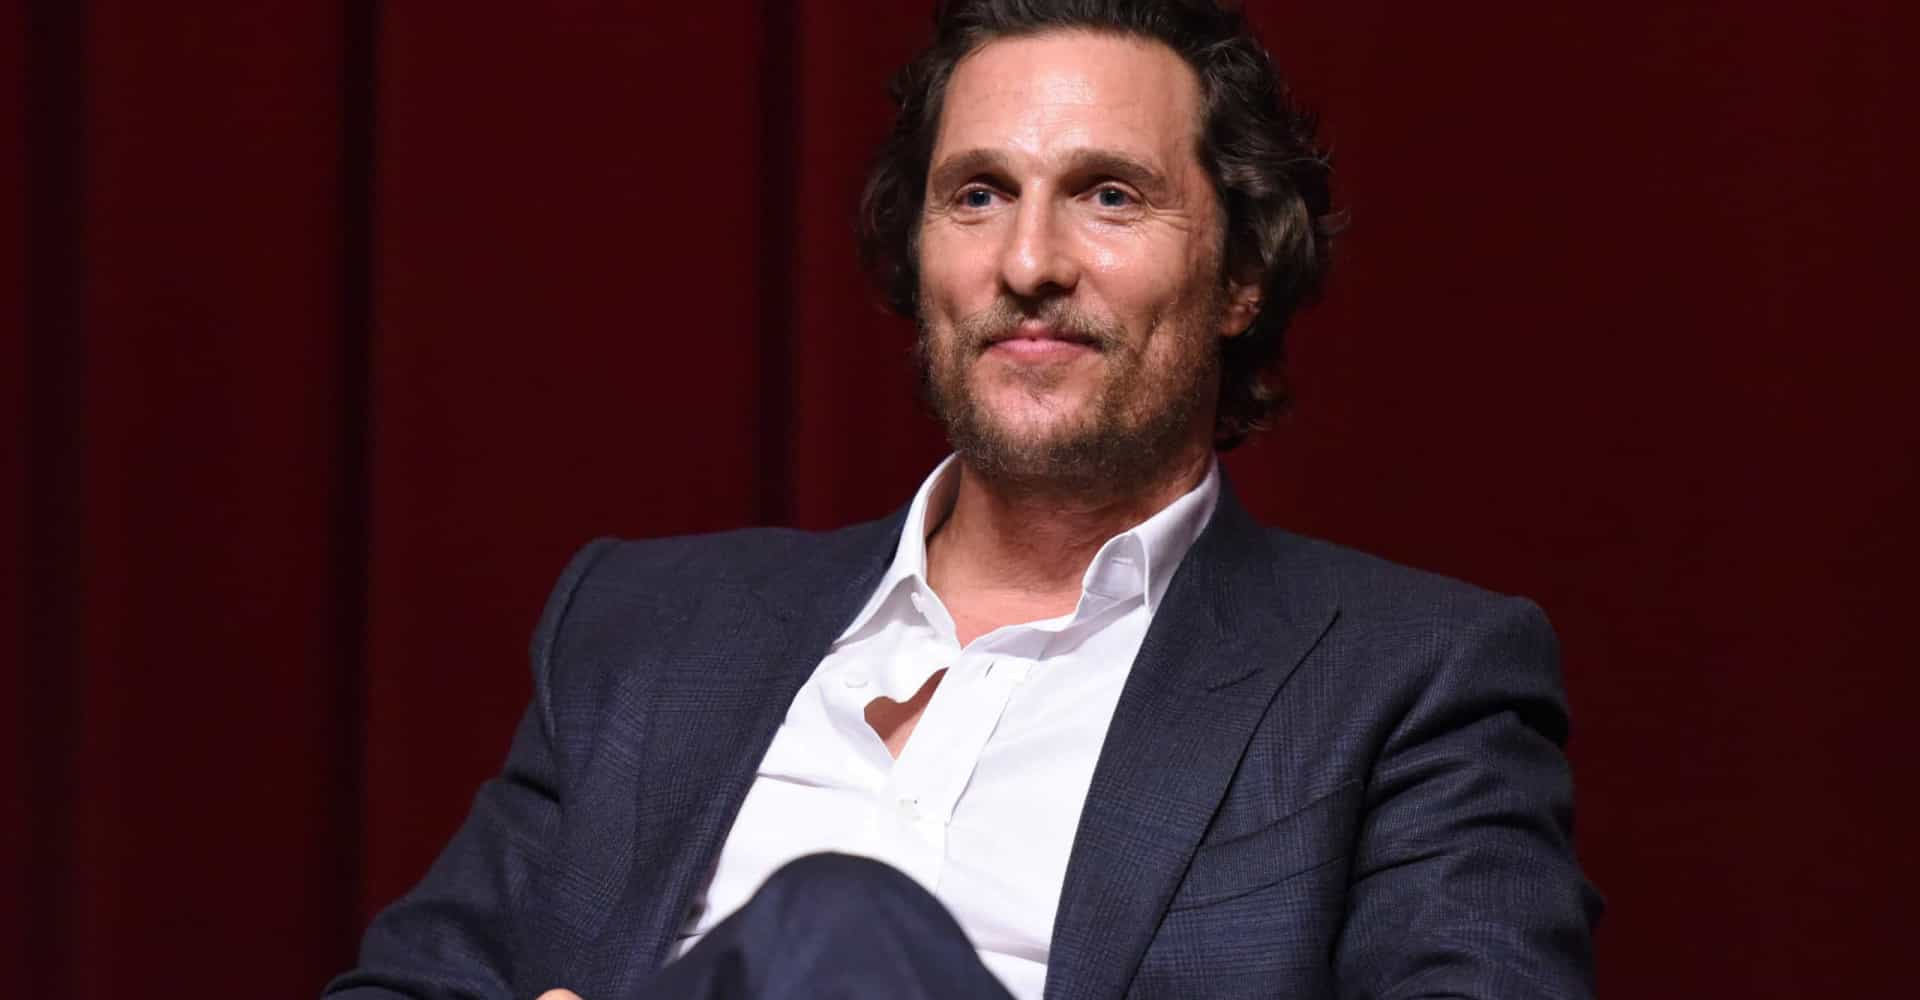 Professor Matthew McConaughey: The chameleon of cinema